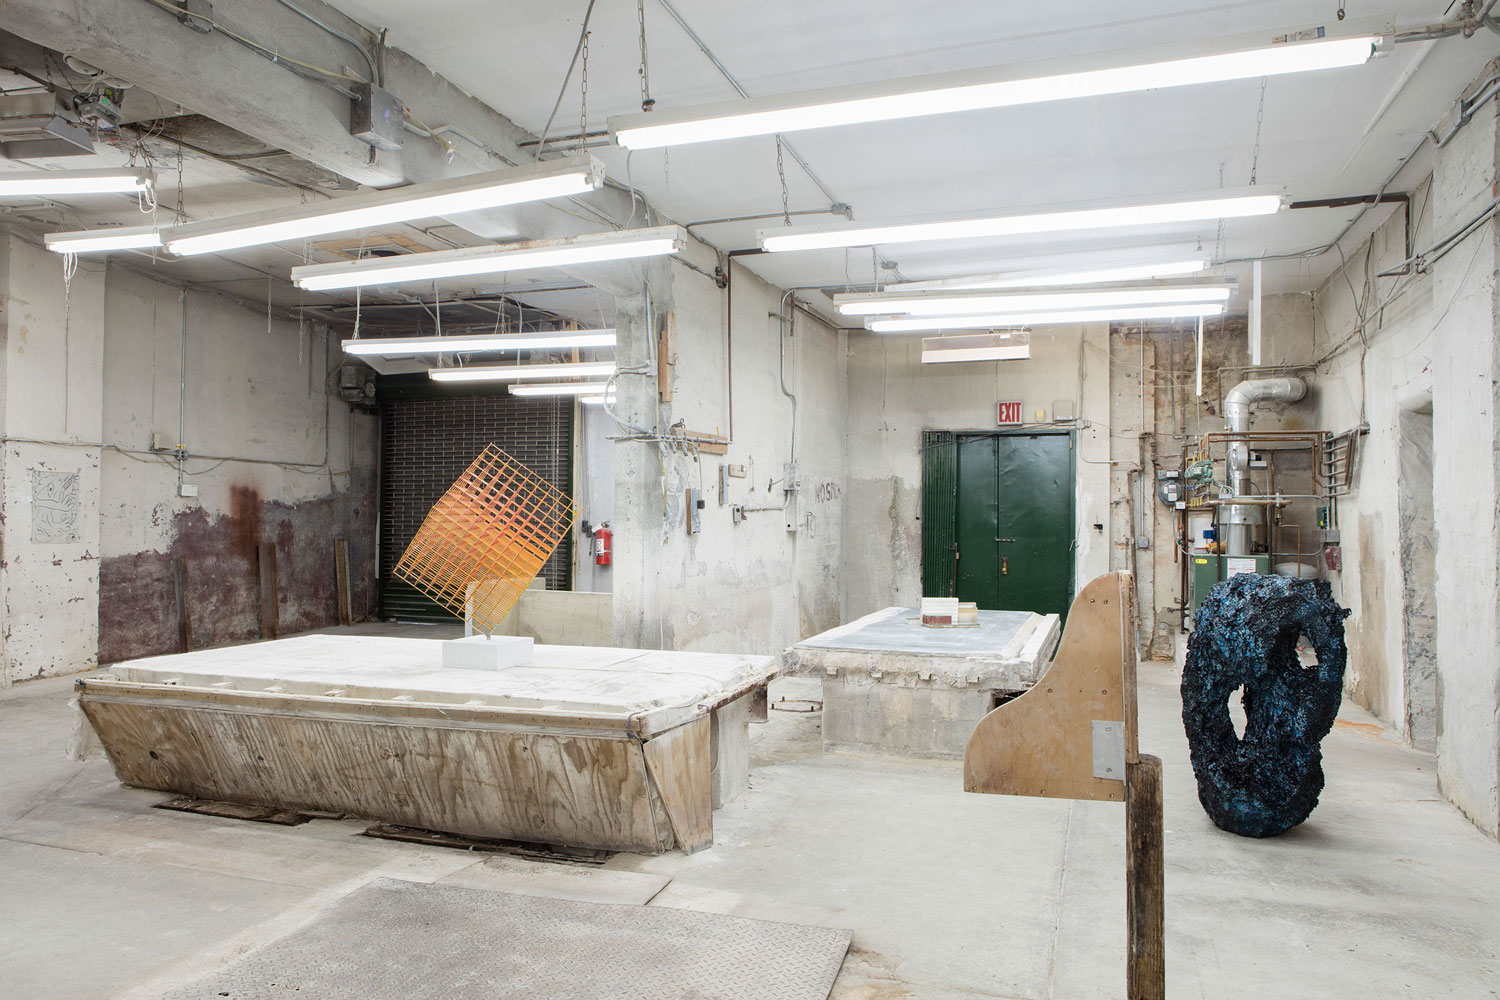 Latin American & Spanish Art takes over Abandoned Marble Factory in Brooklyn | Yellowtrace